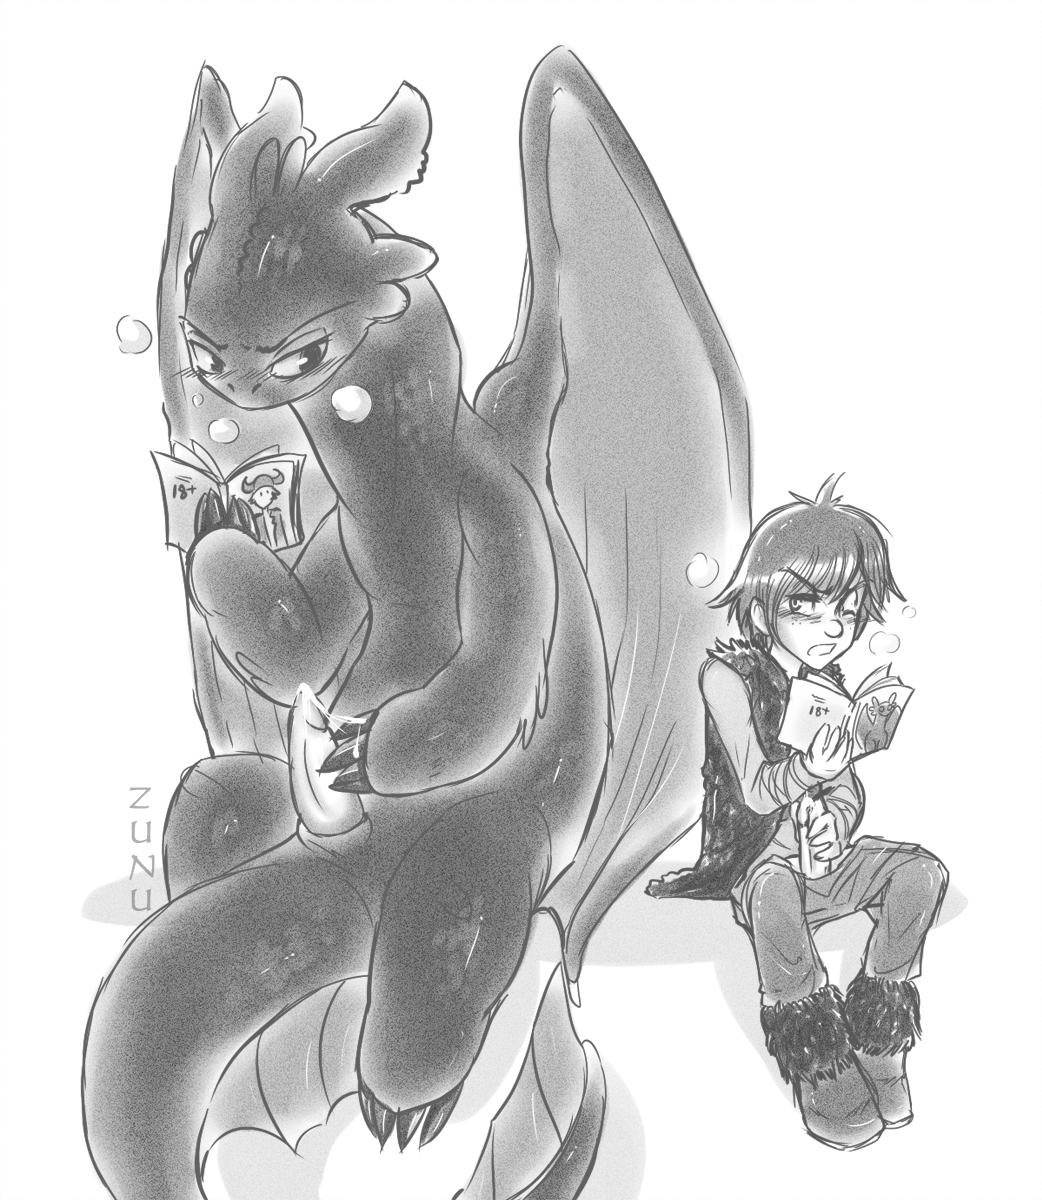 fanfiction train abused how hiccup your dragon to Steven universe blue and yellow diamond